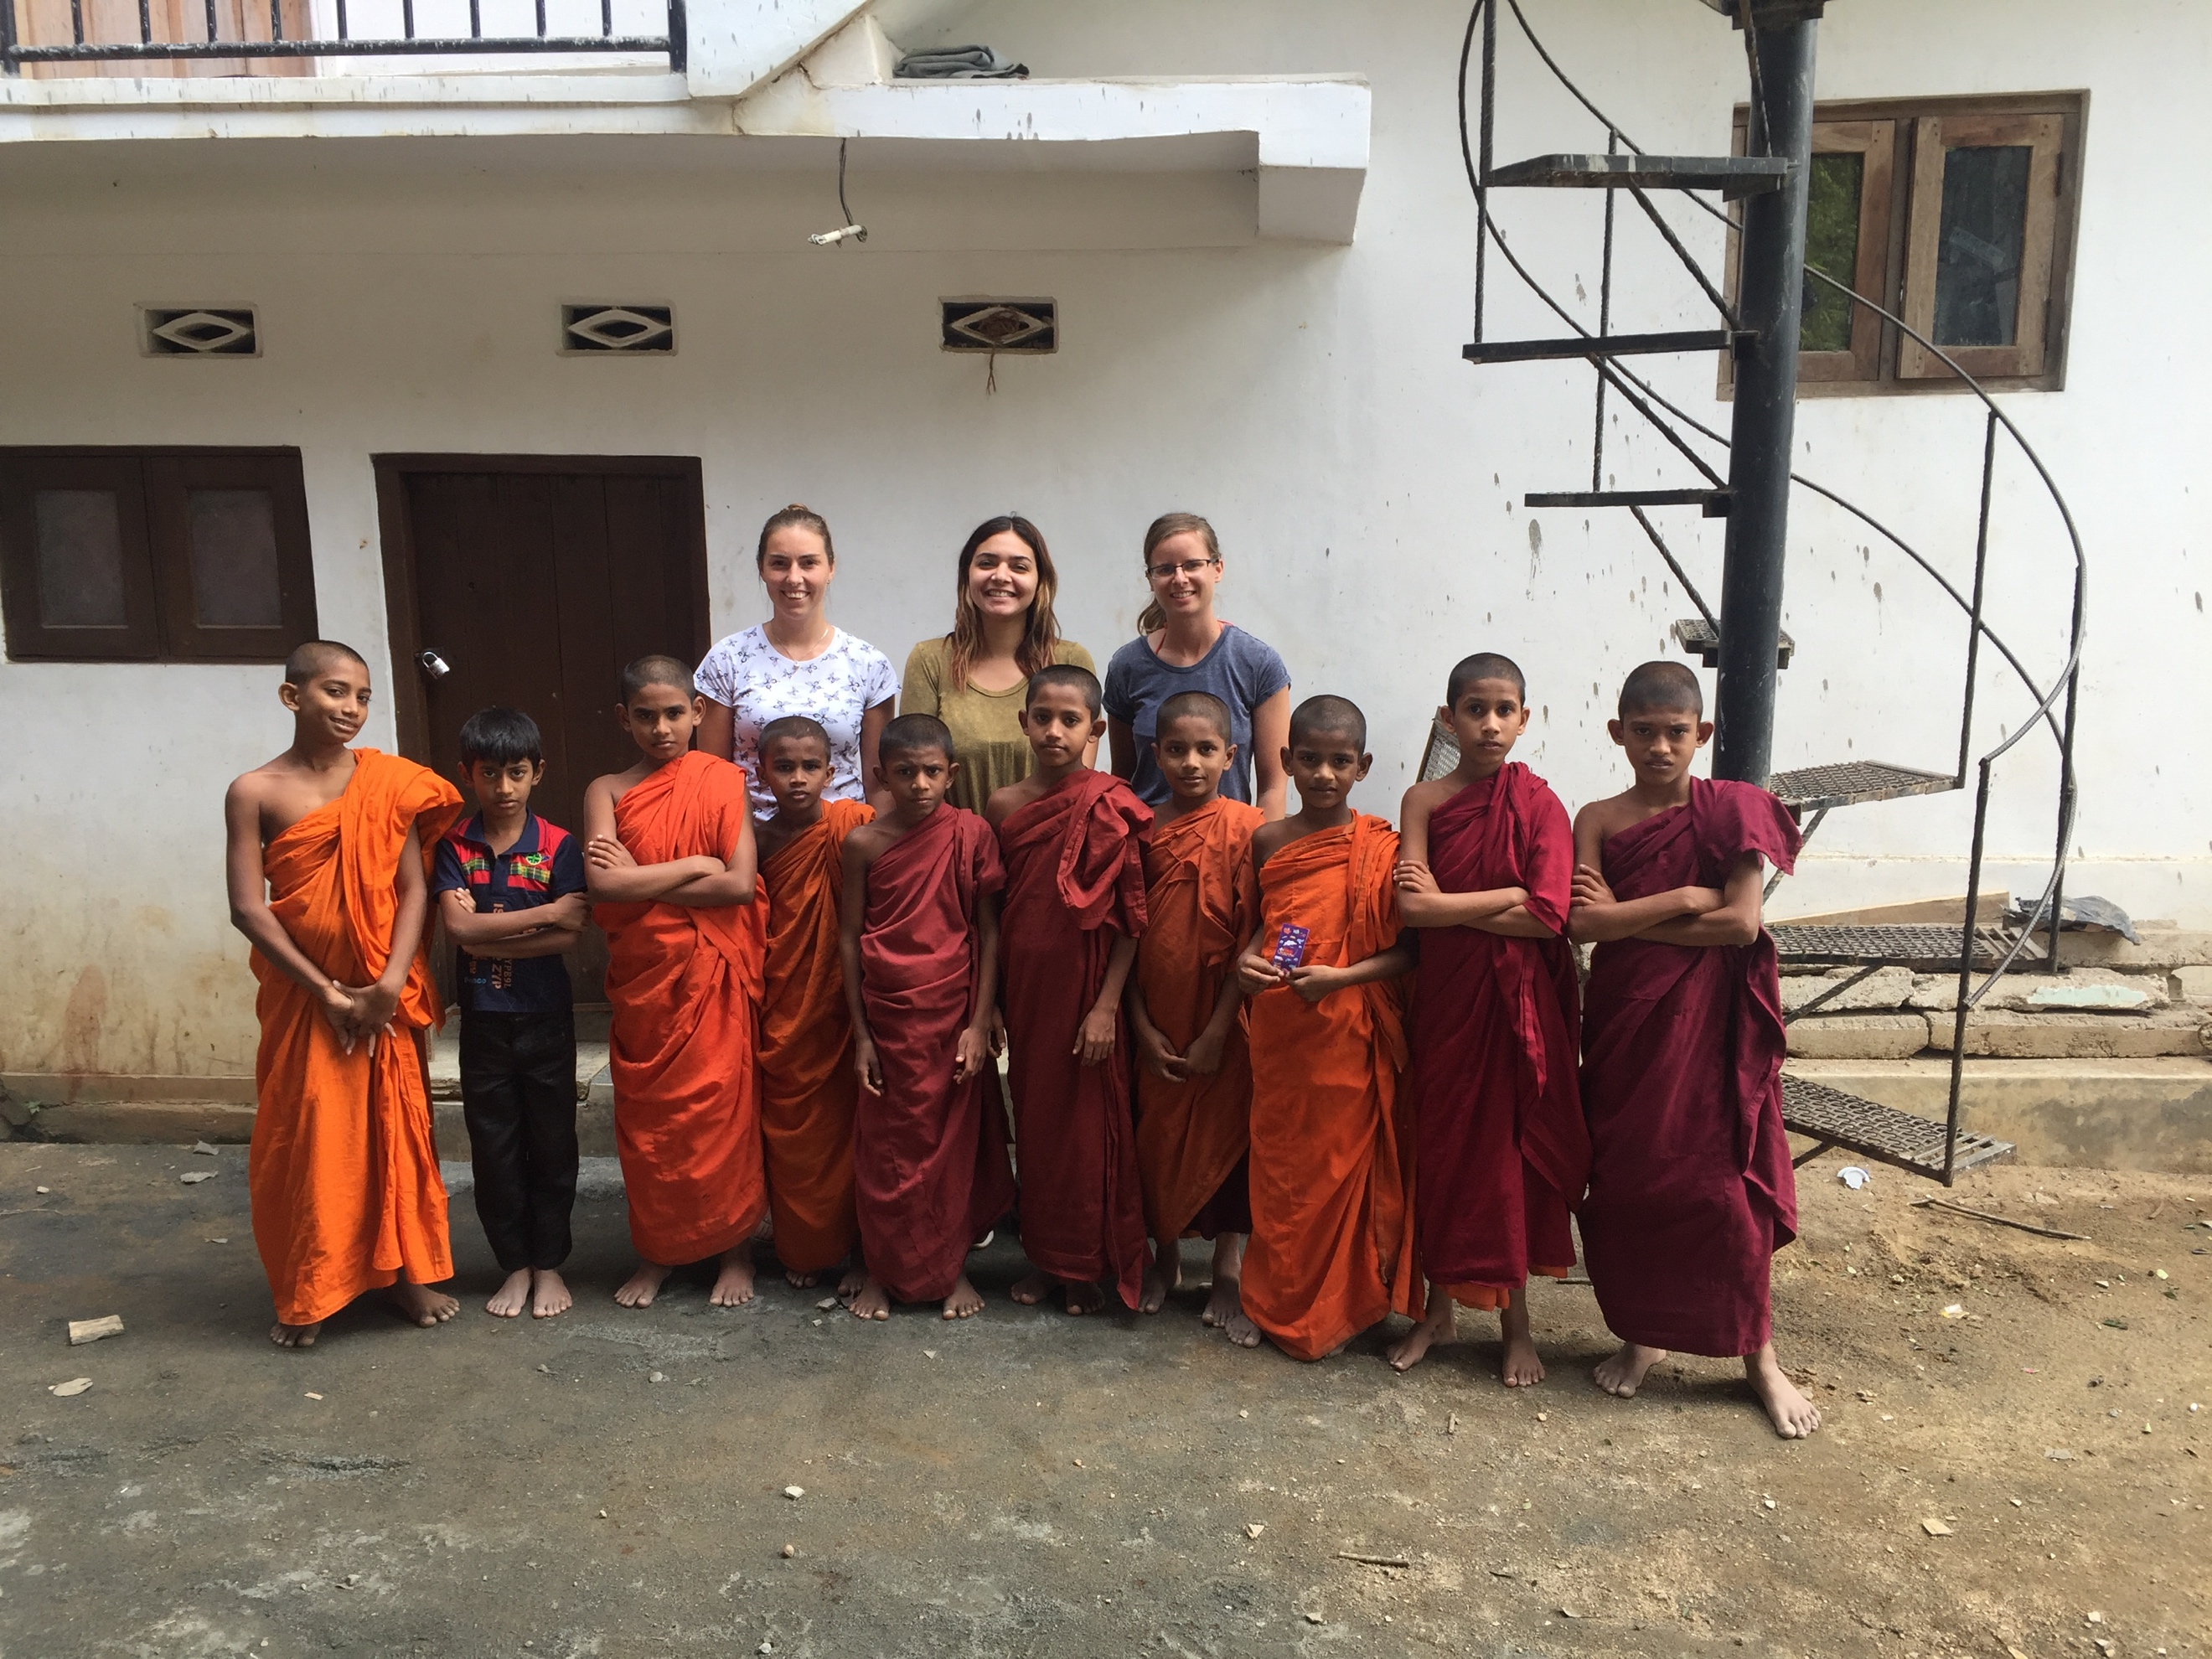 5 Things You Will Love About Volunteering in Sri Lanka